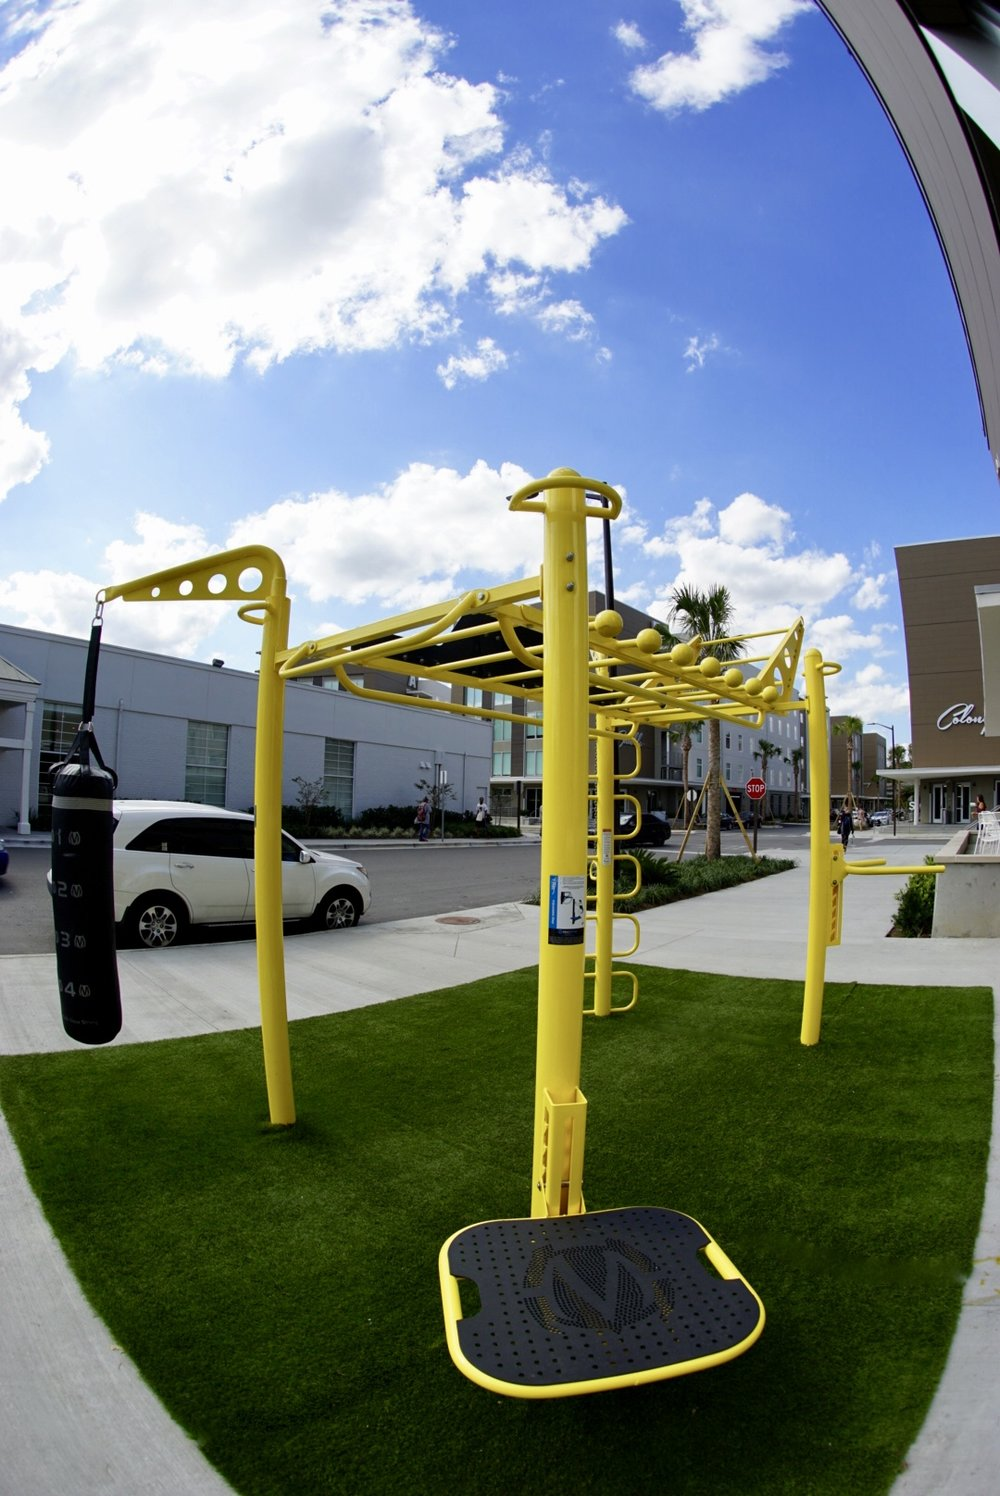 Group Fitness Equipment Outdoors